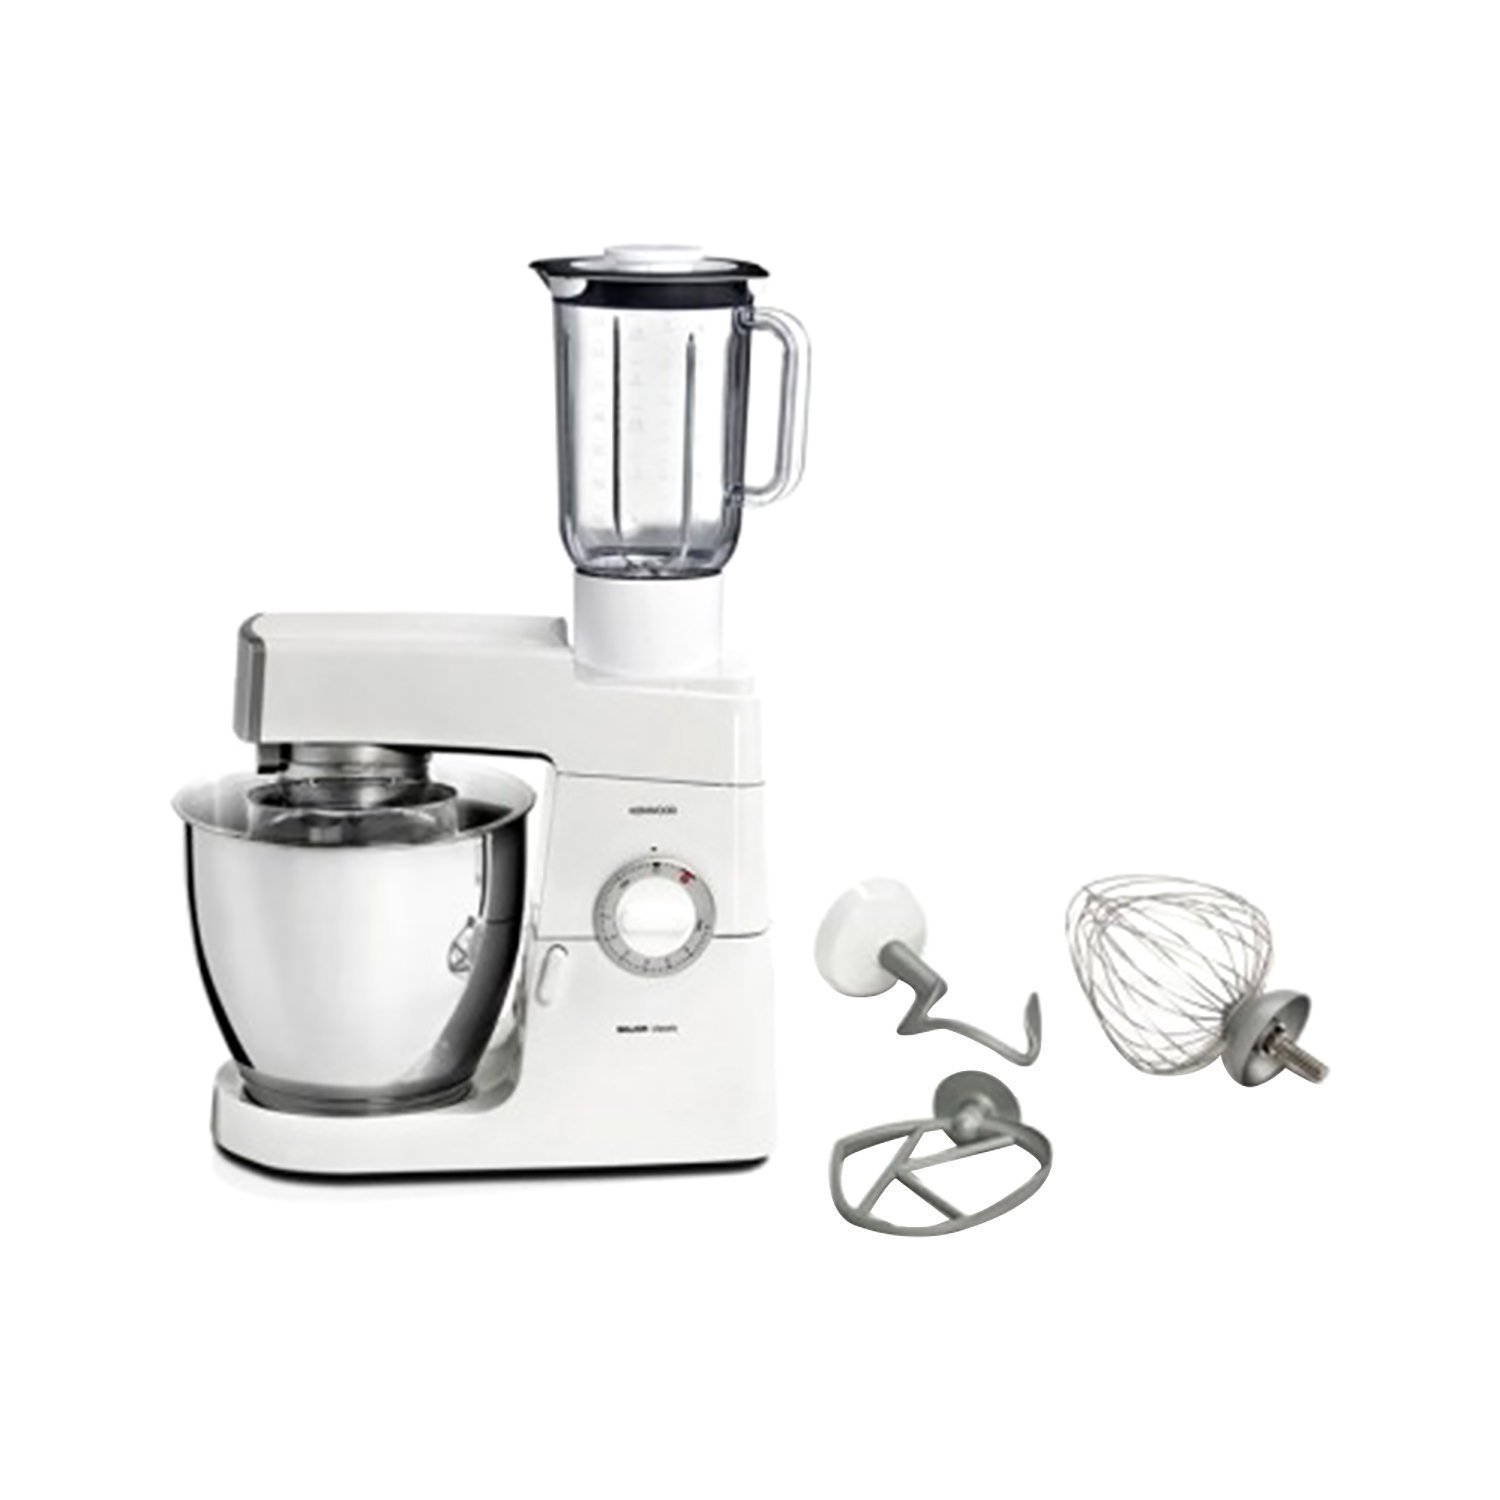 KENWOOD CLASSIC MAJOR KITCHEN MACHINE - WHITE AND SILVER - KM636/002